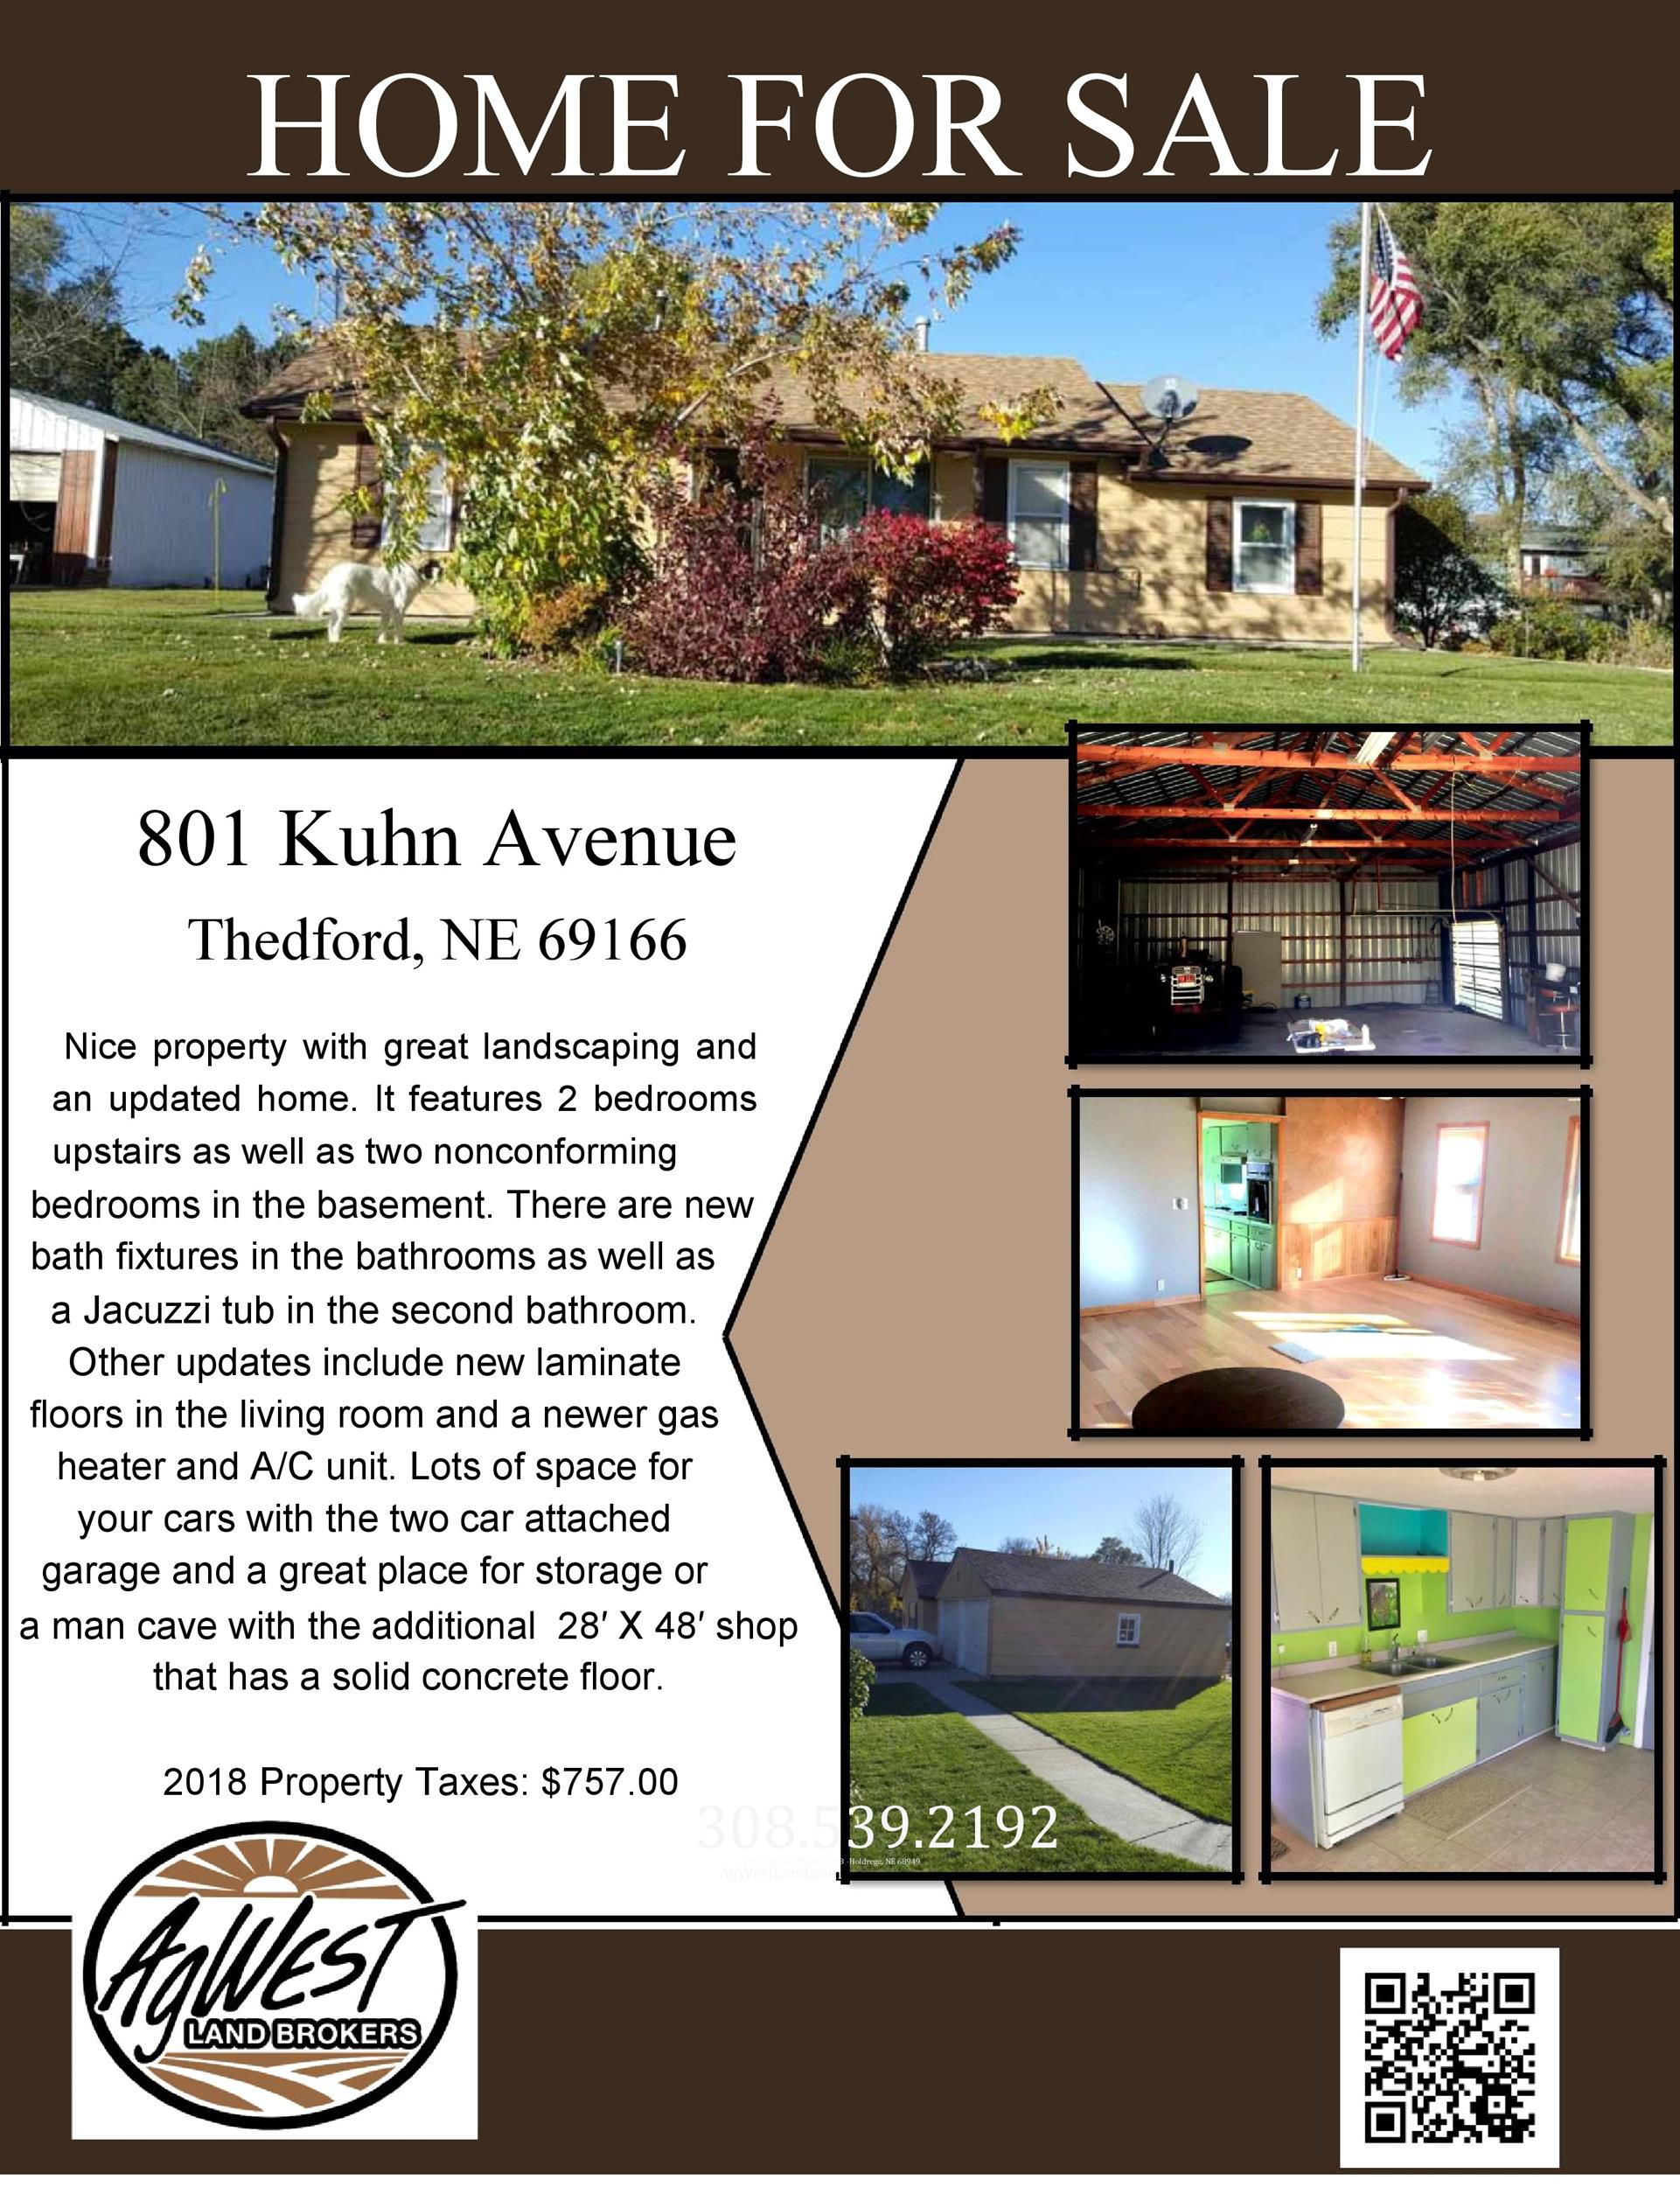 004 Striking House For Sale Flyer Template Sample  Free Real Estate Example By OwnerFull